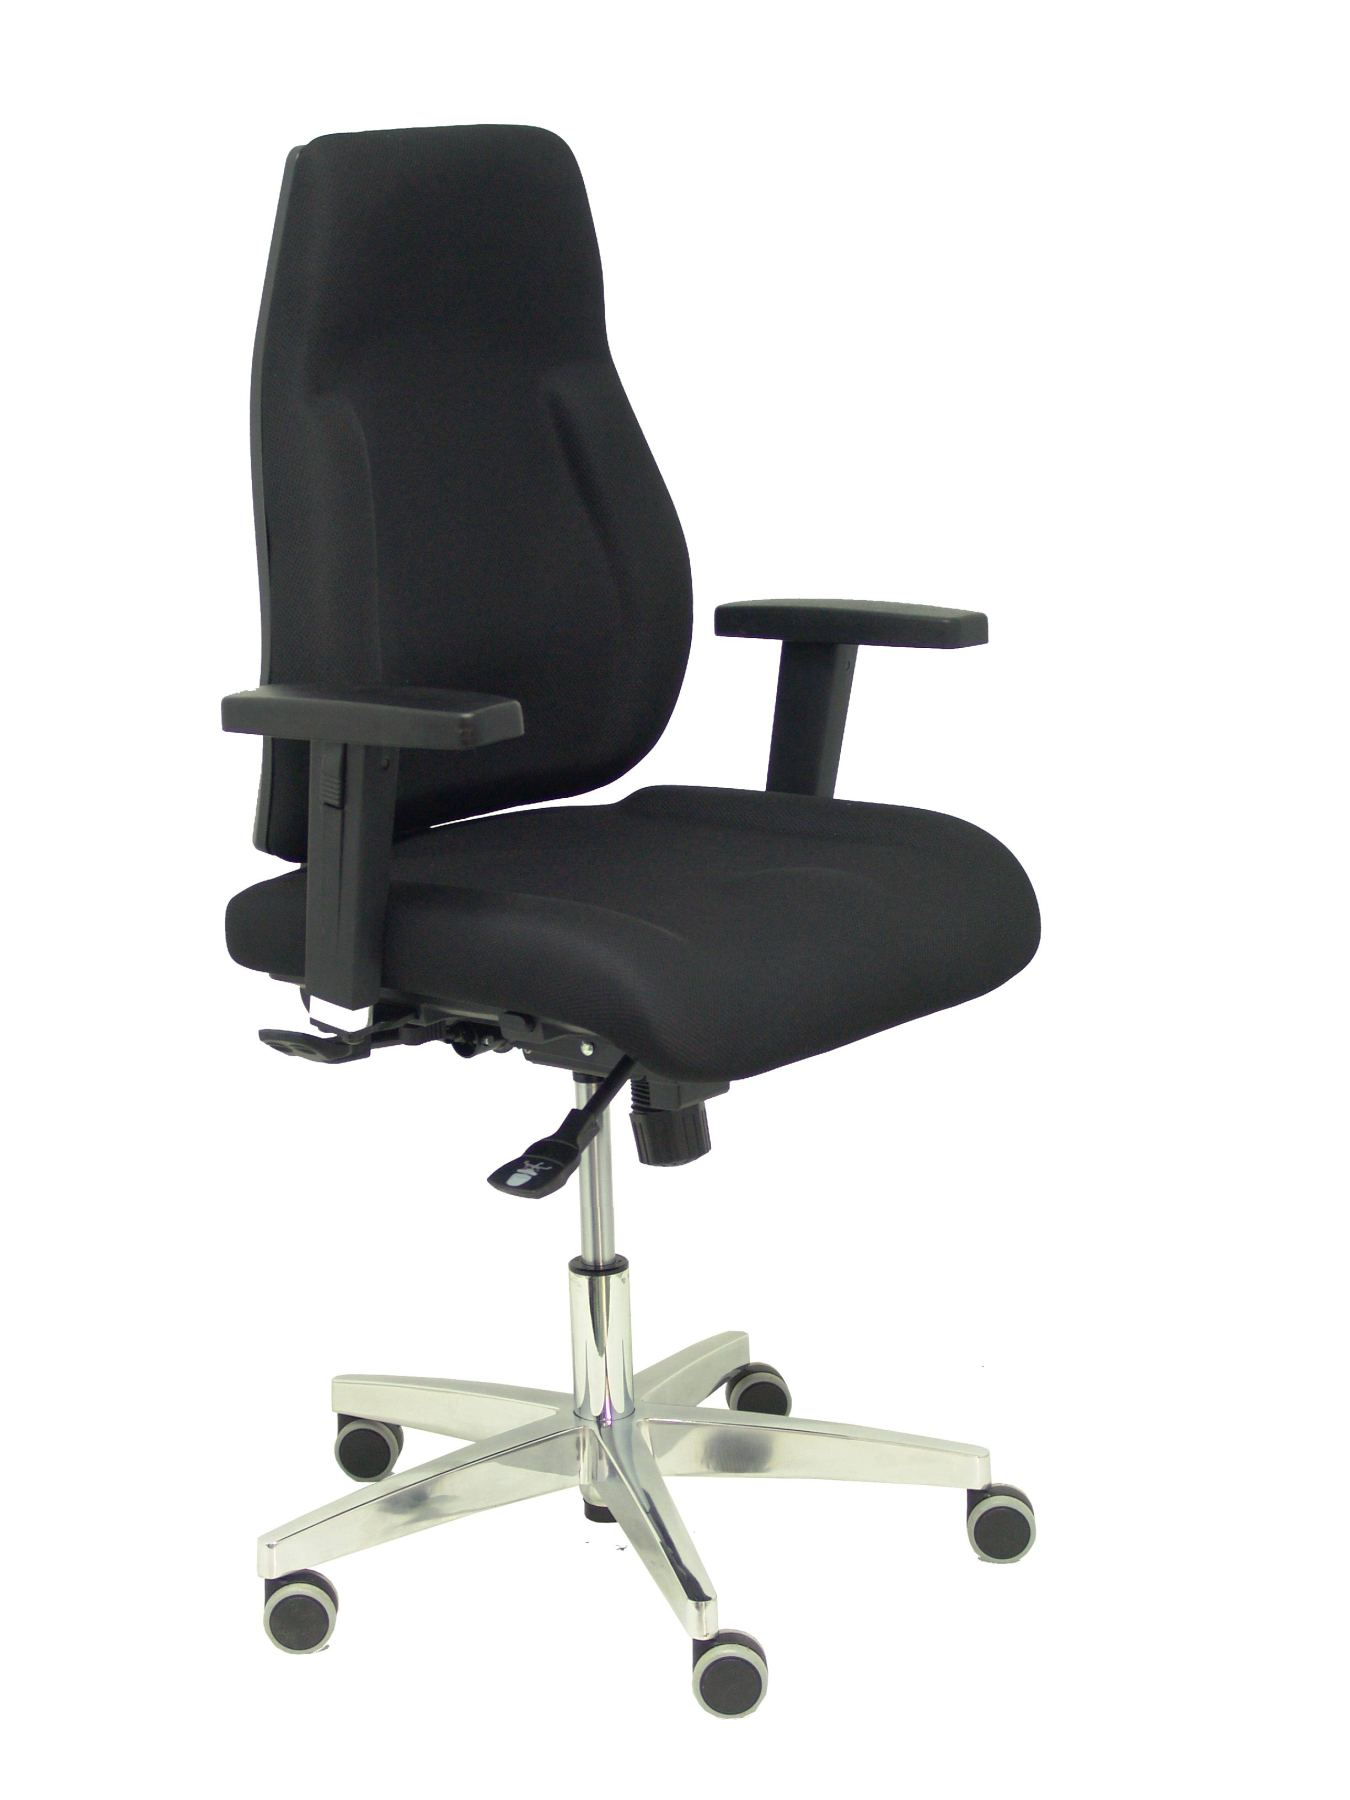 Ergonomic Office Chair With Mechanism Synchro And Traslak, Arms 3D Adjustable-Backrest And Seat Upholstered In Weaving Czech